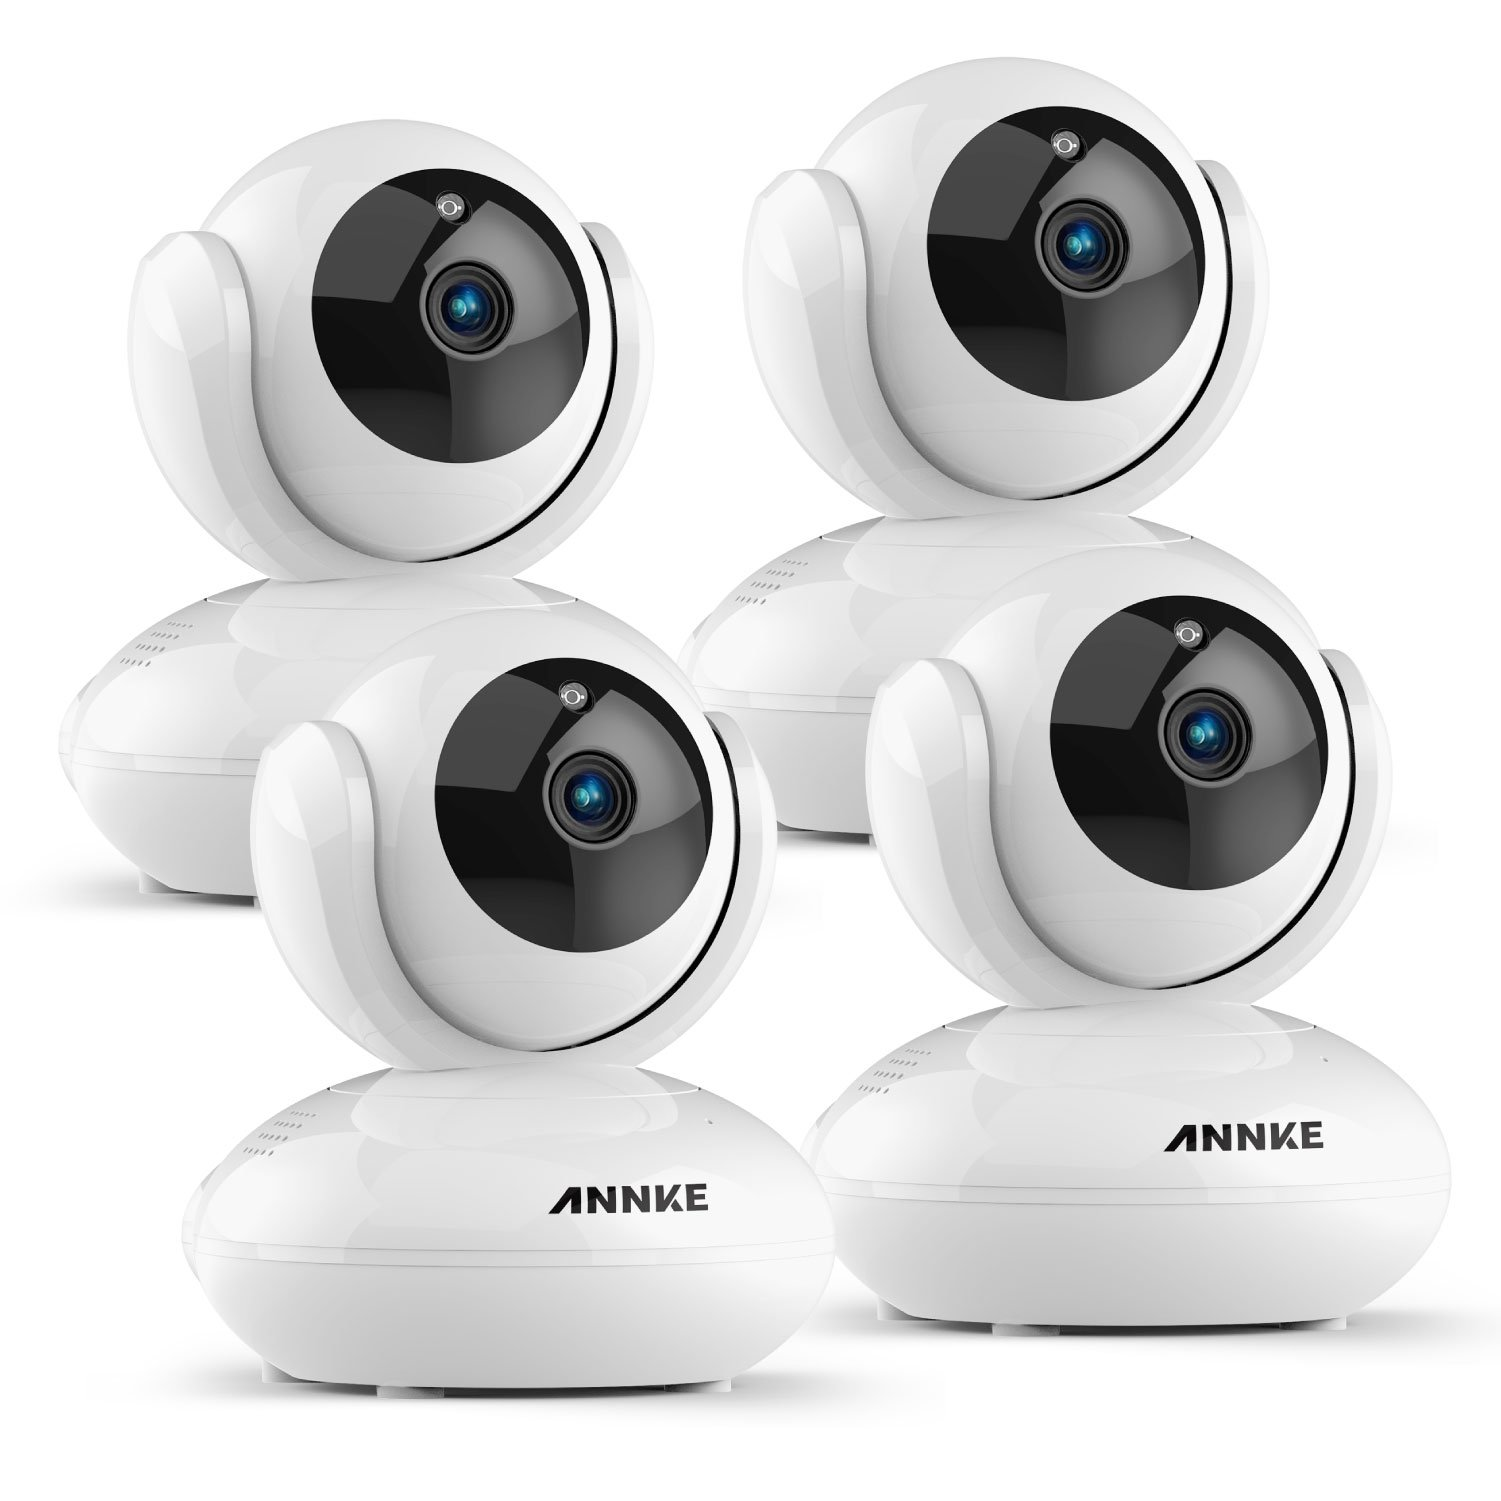 ANNKE 1080P Home Camera, 4x Indoor Wireless IP Security Surveillance System with Night Vision for Home / Office / Baby / Pet Monitor with iOS, Android App - Smart App Push Alerts